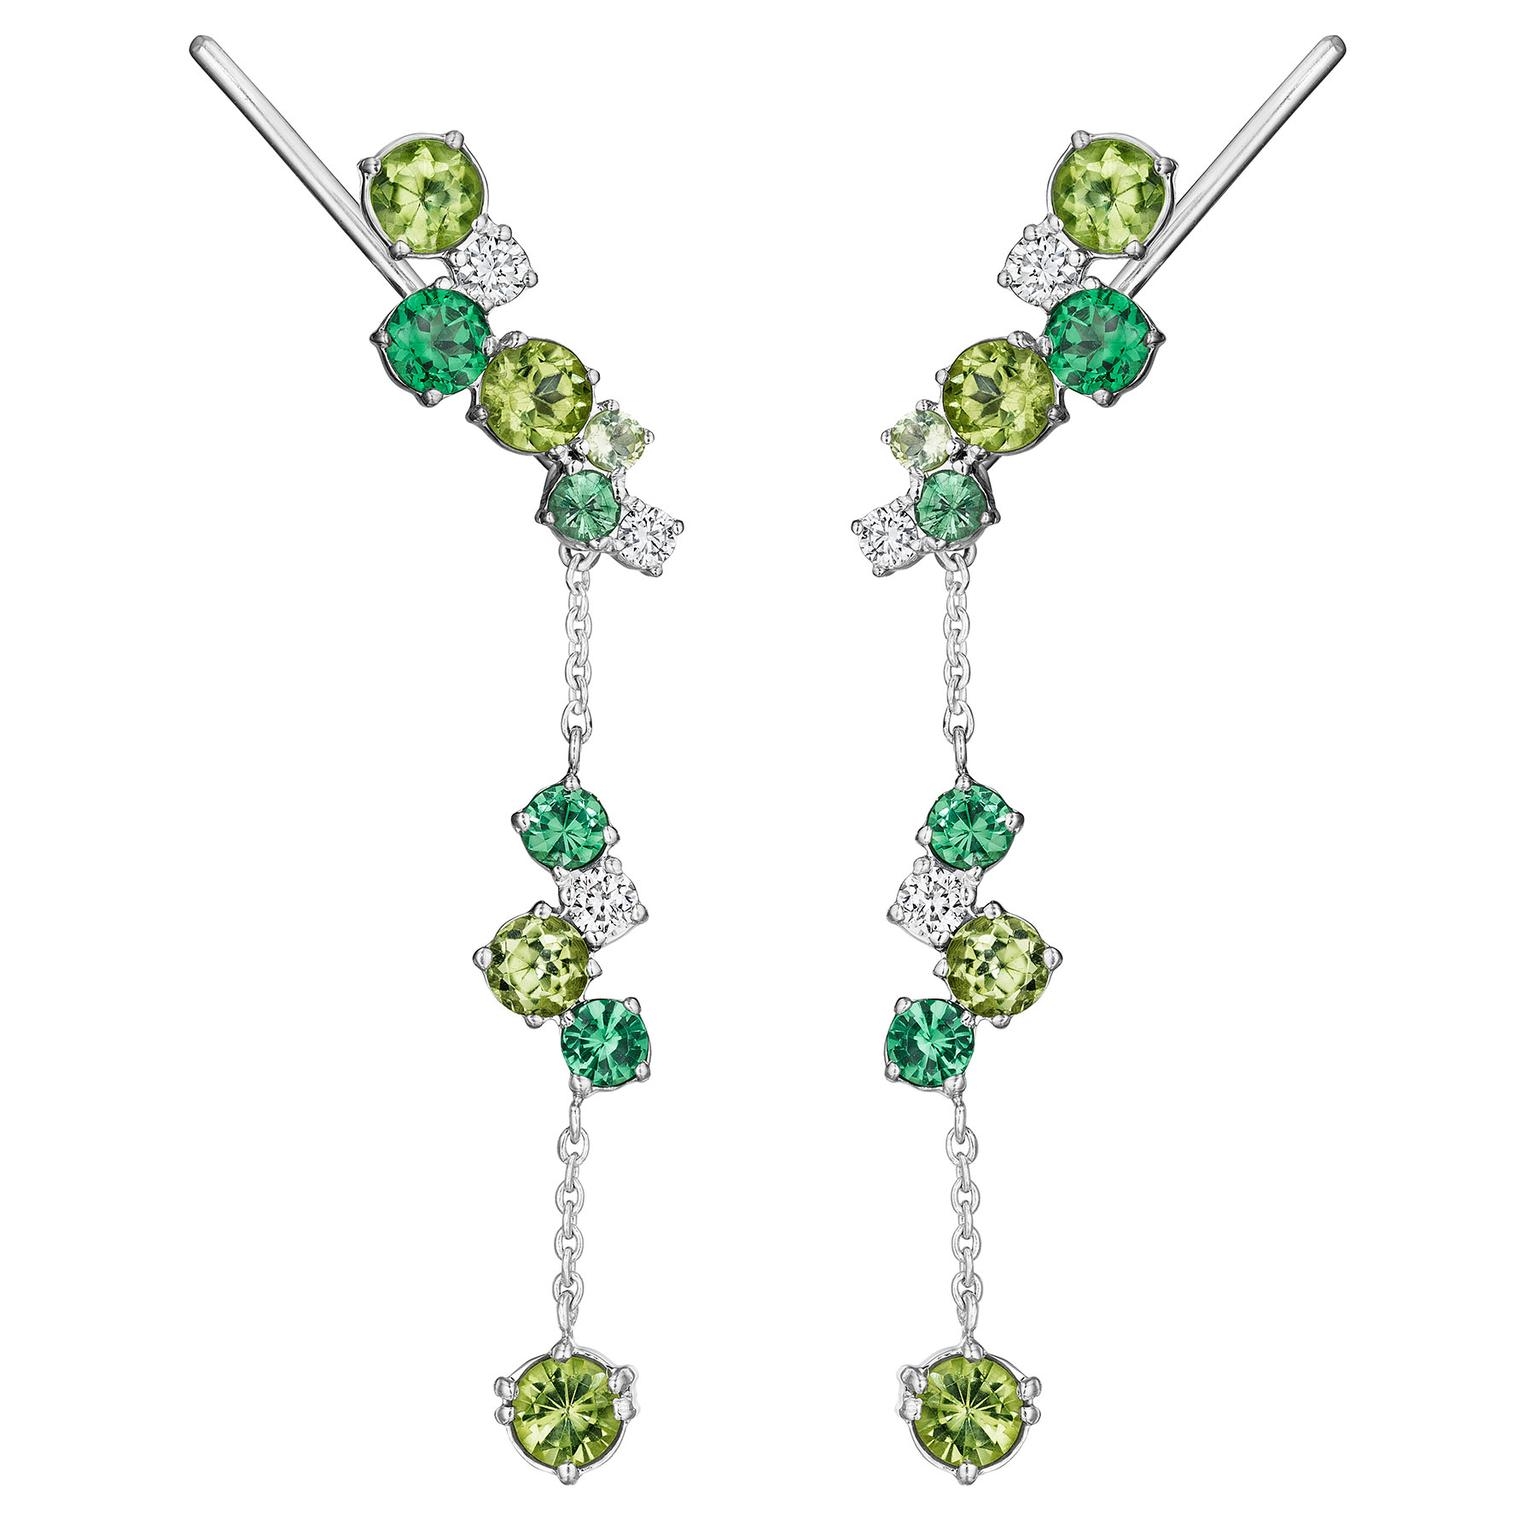 Madstone Design tsavorite and peridot earrings